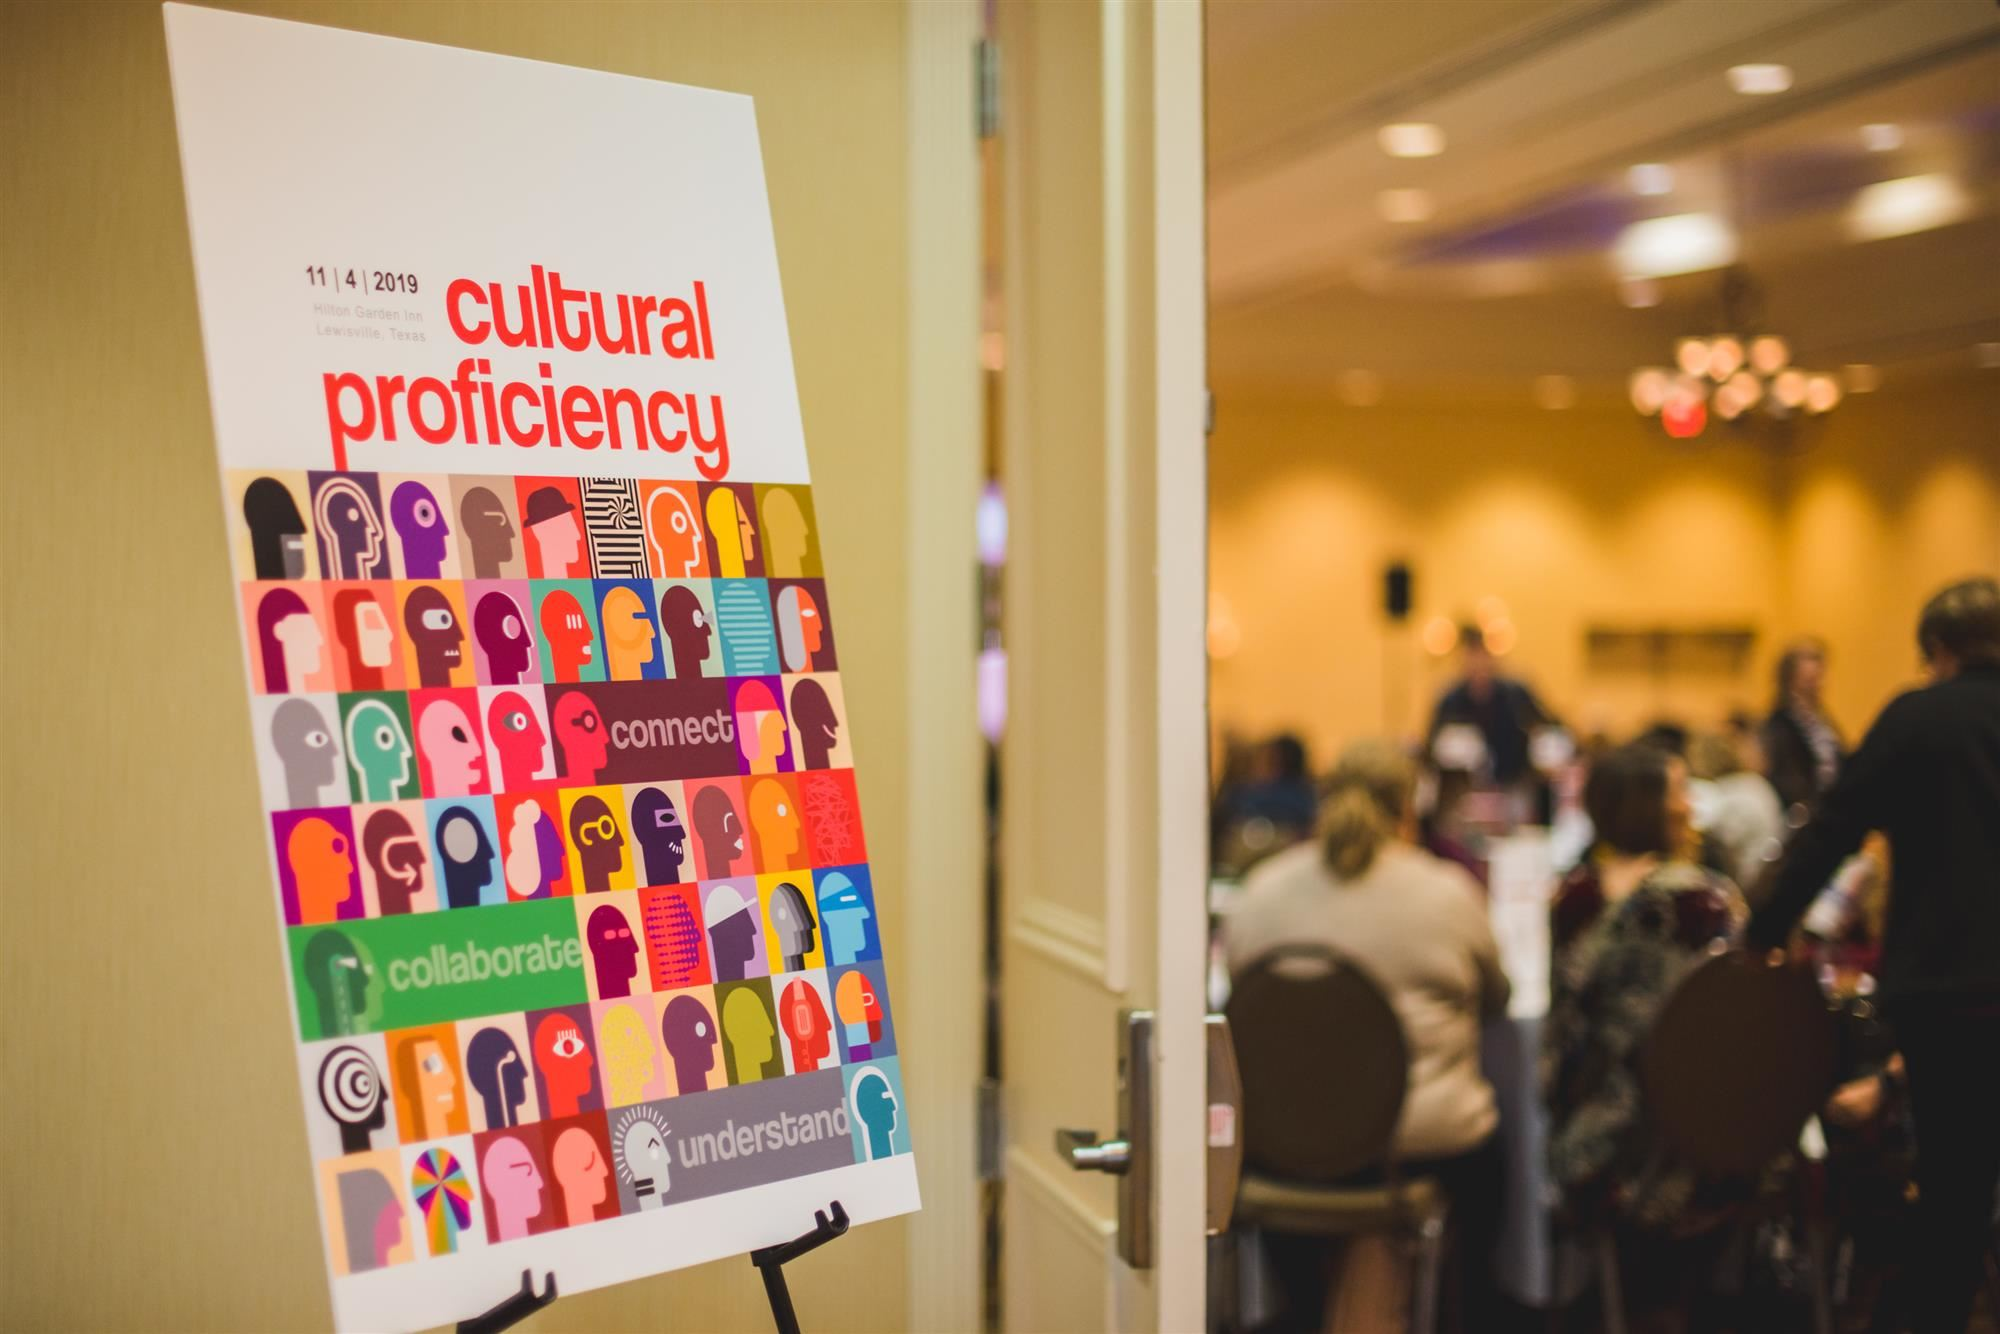 LISD Cultural Proficiency Event in Fall 2019